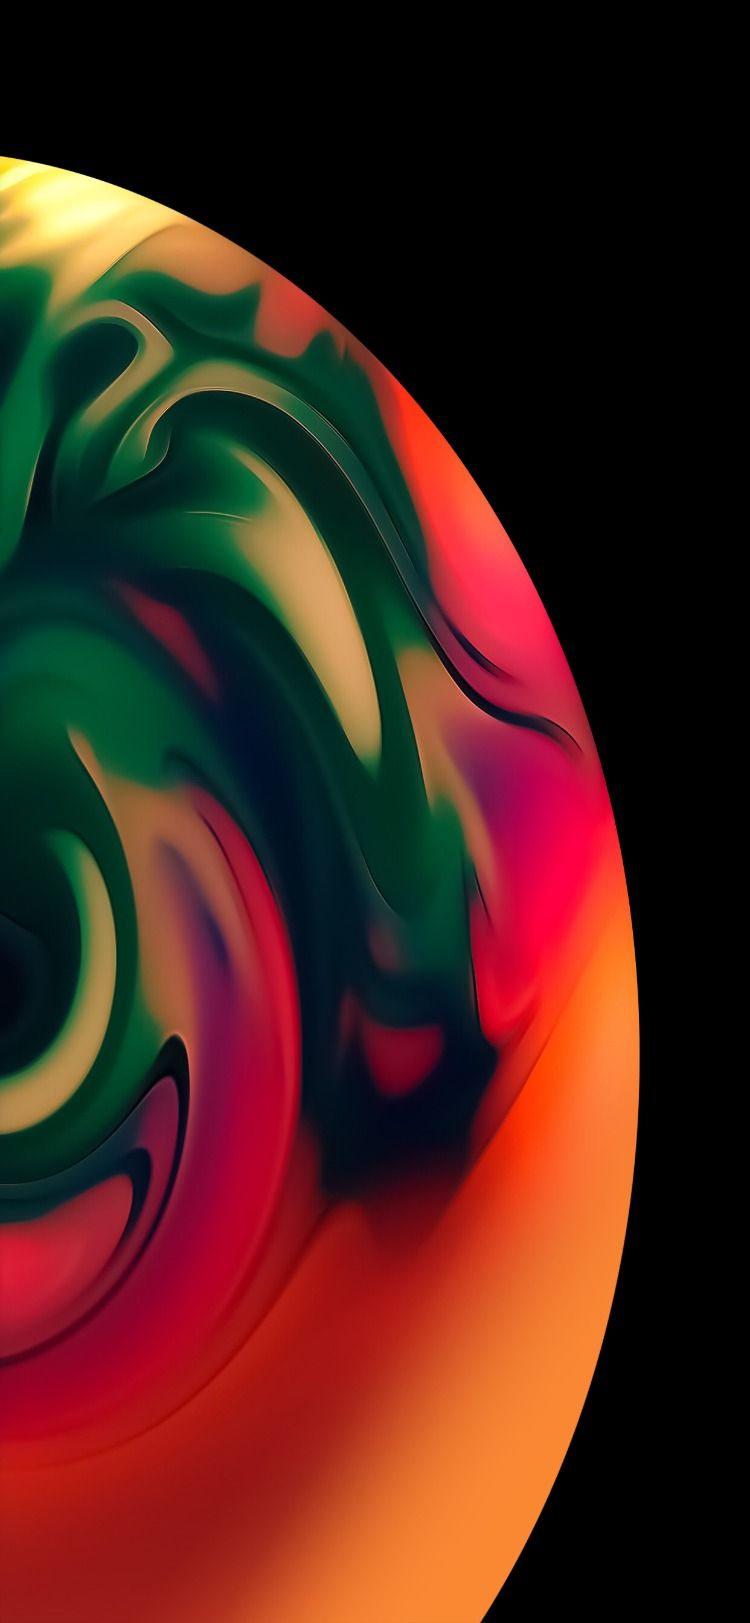 Abstract Wallpaper 19 For Iphone Android Bubbles Wallpaper Abstract Wallpaper Abstract